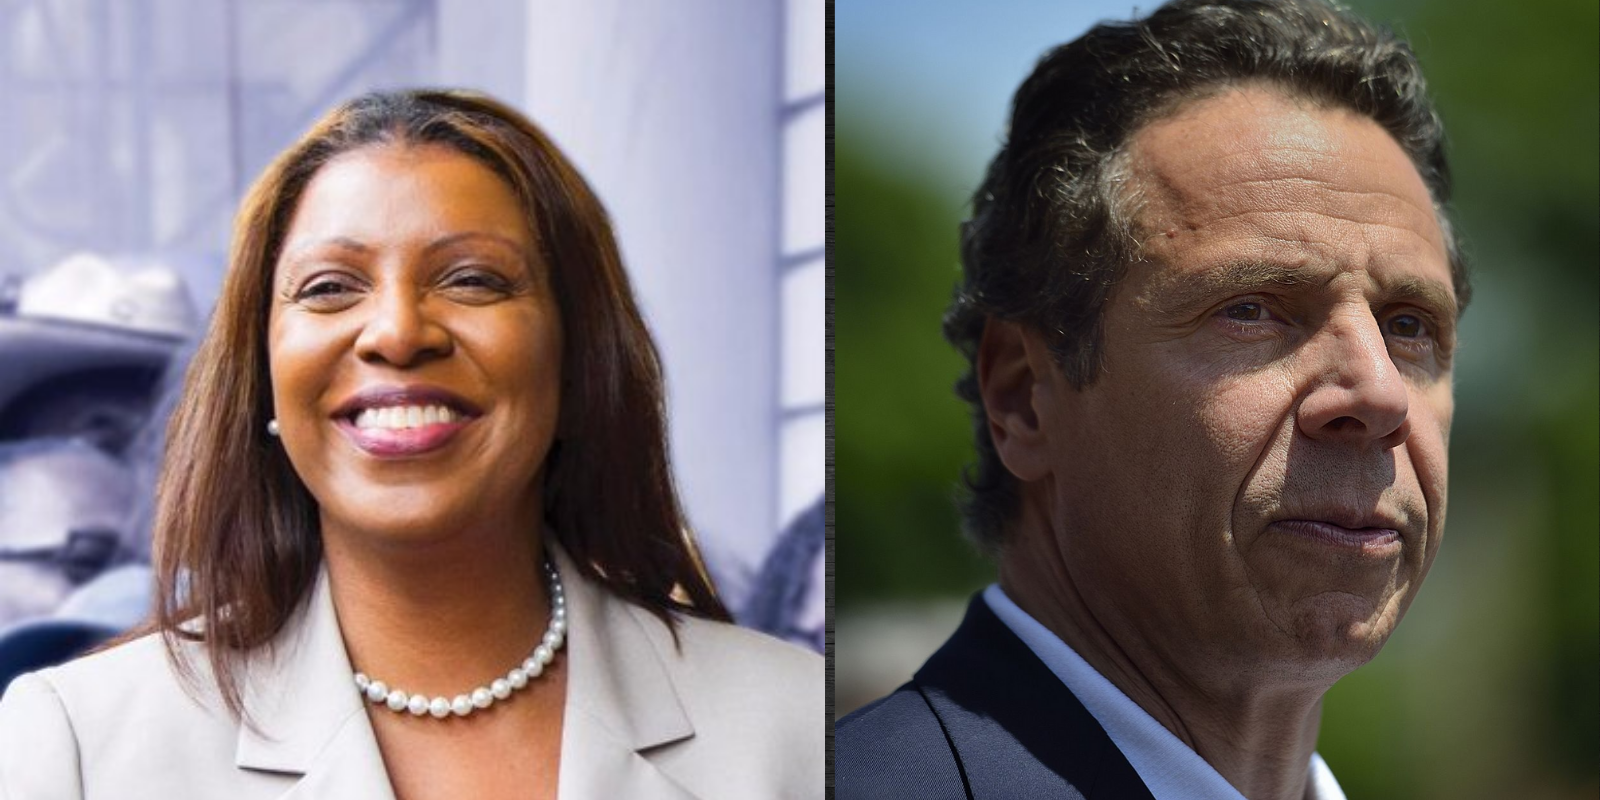 NY Attorney General to investigate Cuomo sexual harassment allegations, Biden admin voices support